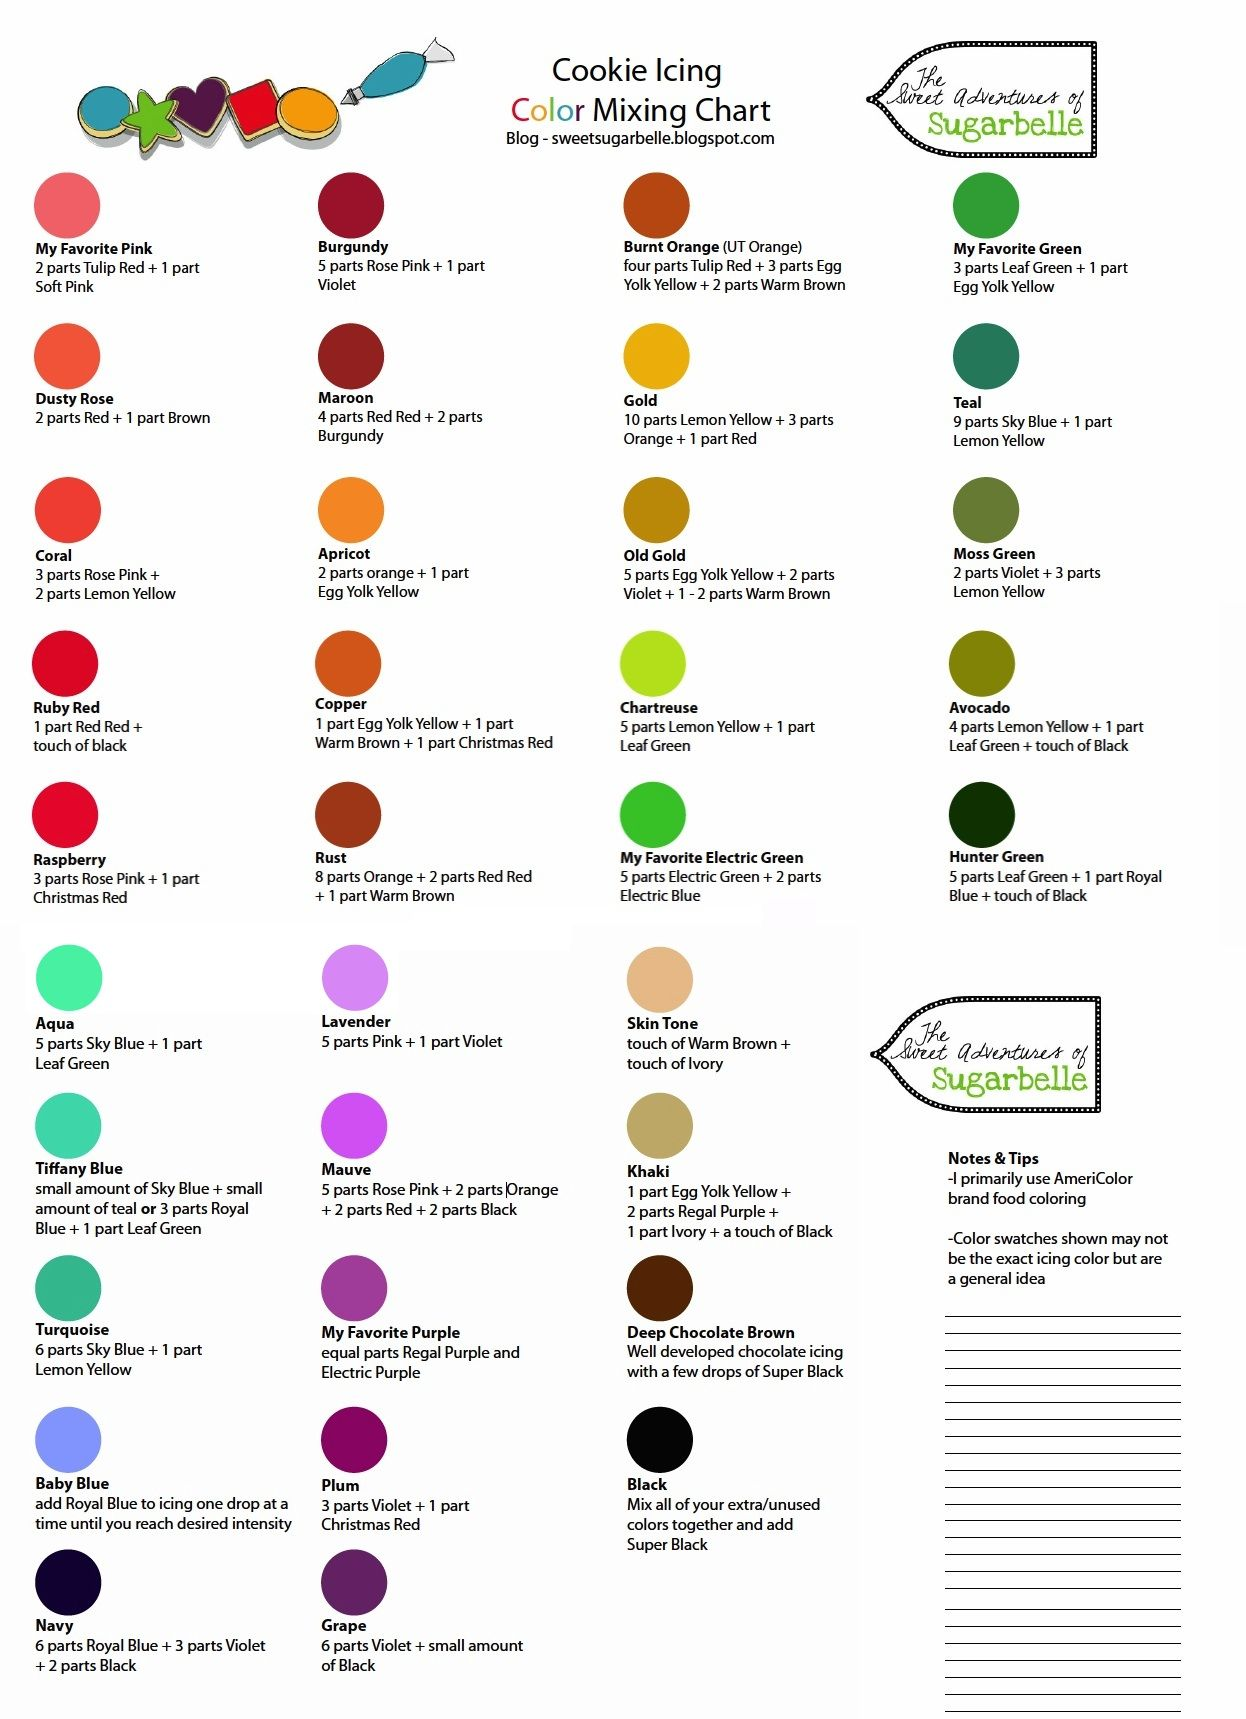 Cookie icing color mixing chart courtesy of sweetsugarbelle also rh pinterest